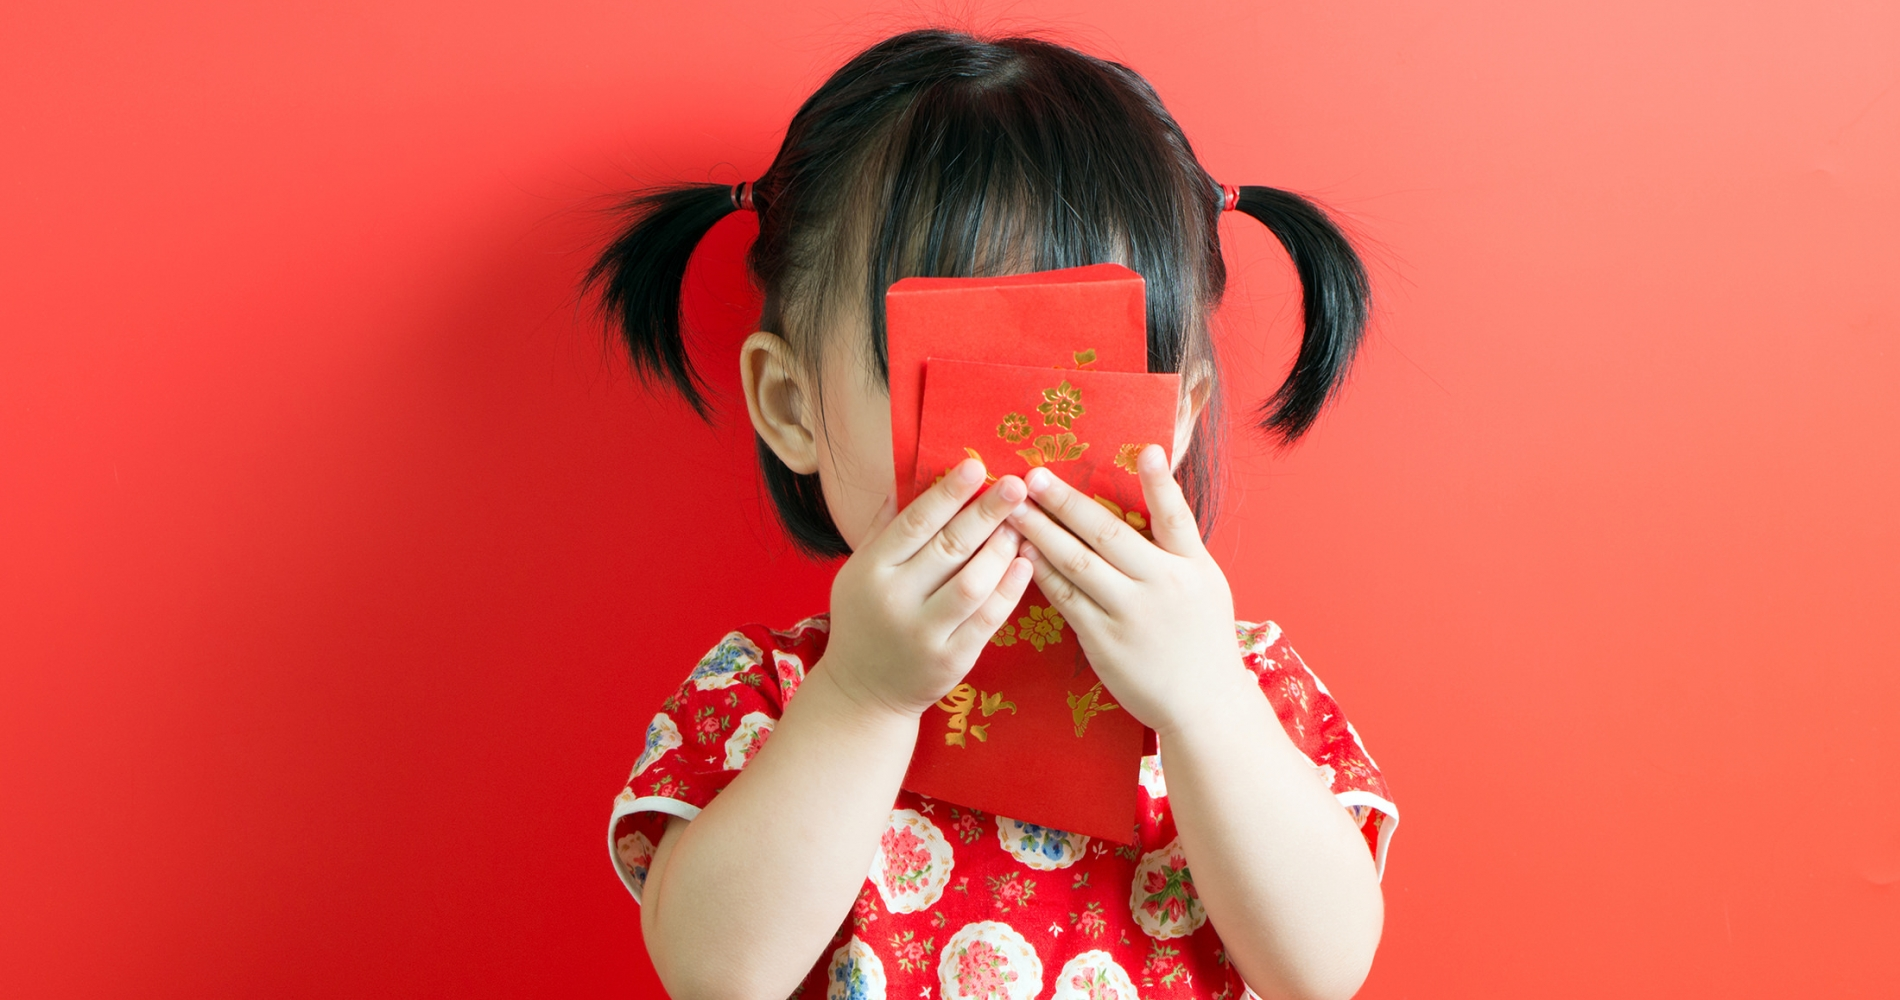 A girl with pigtails stands in front of a red background folding red cards embossed with gold print in front of her face.